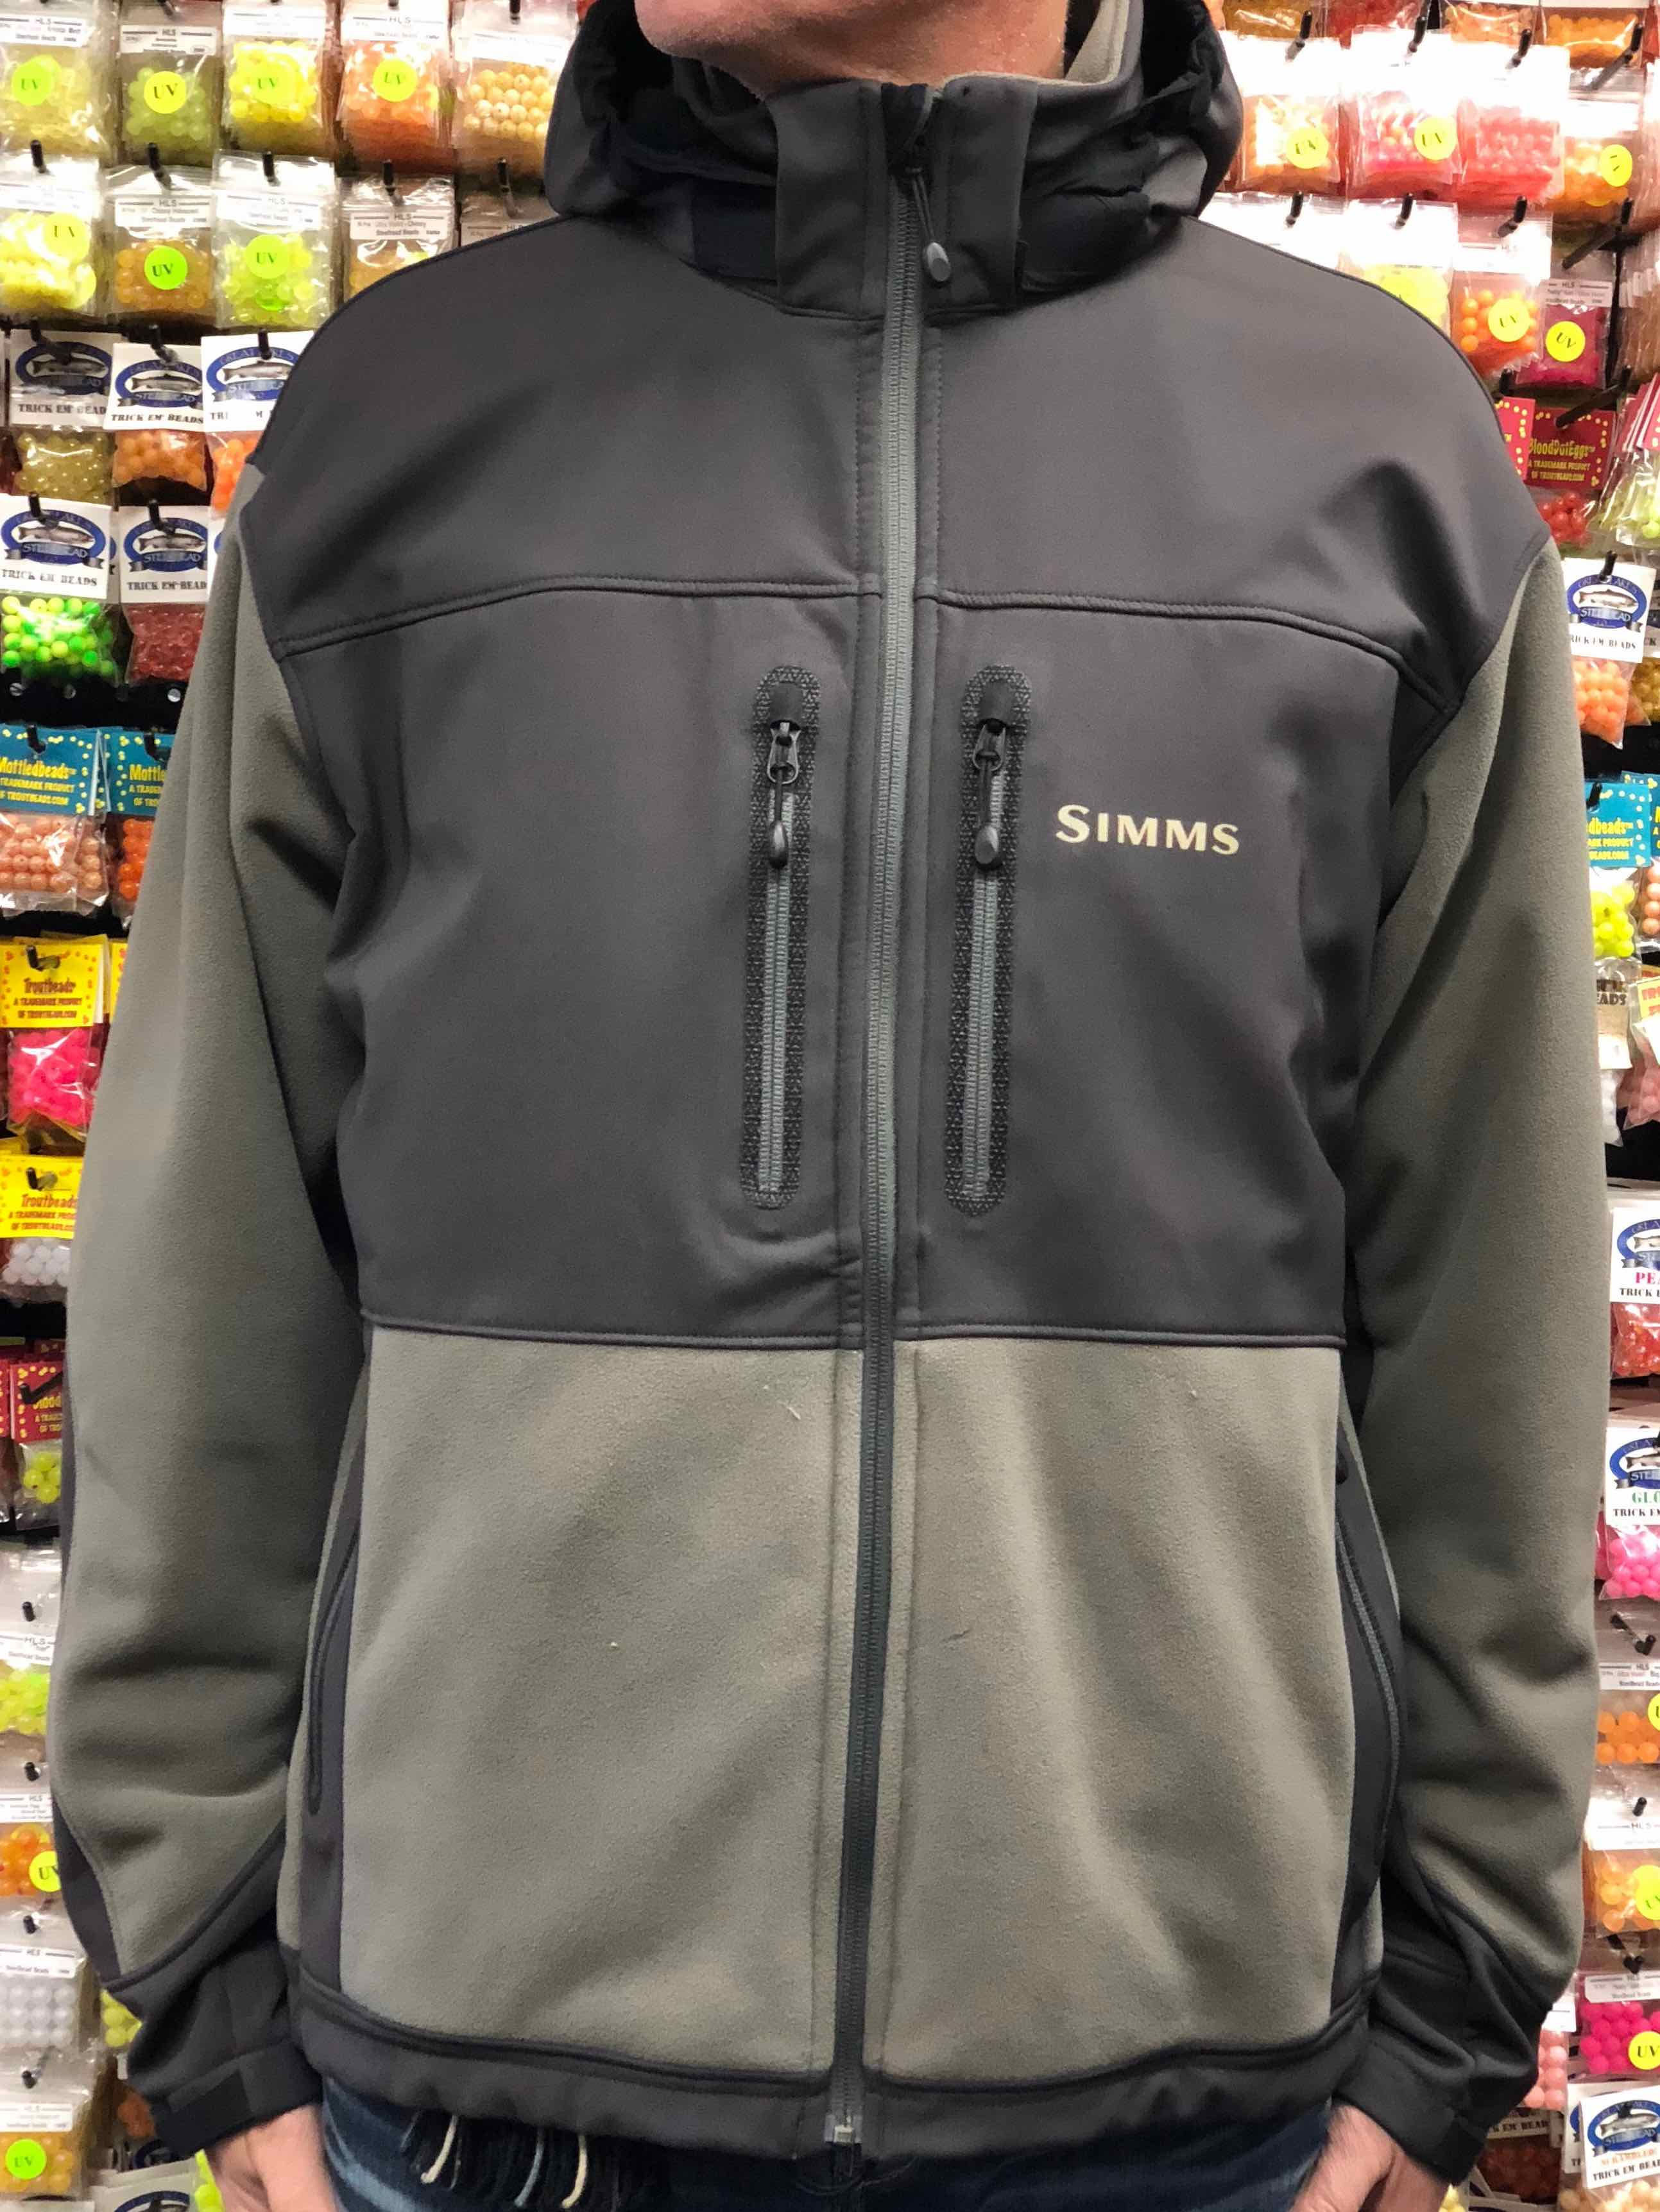 Simms Windstopper Soft Shell Jacket - LIKE NEW! - $75